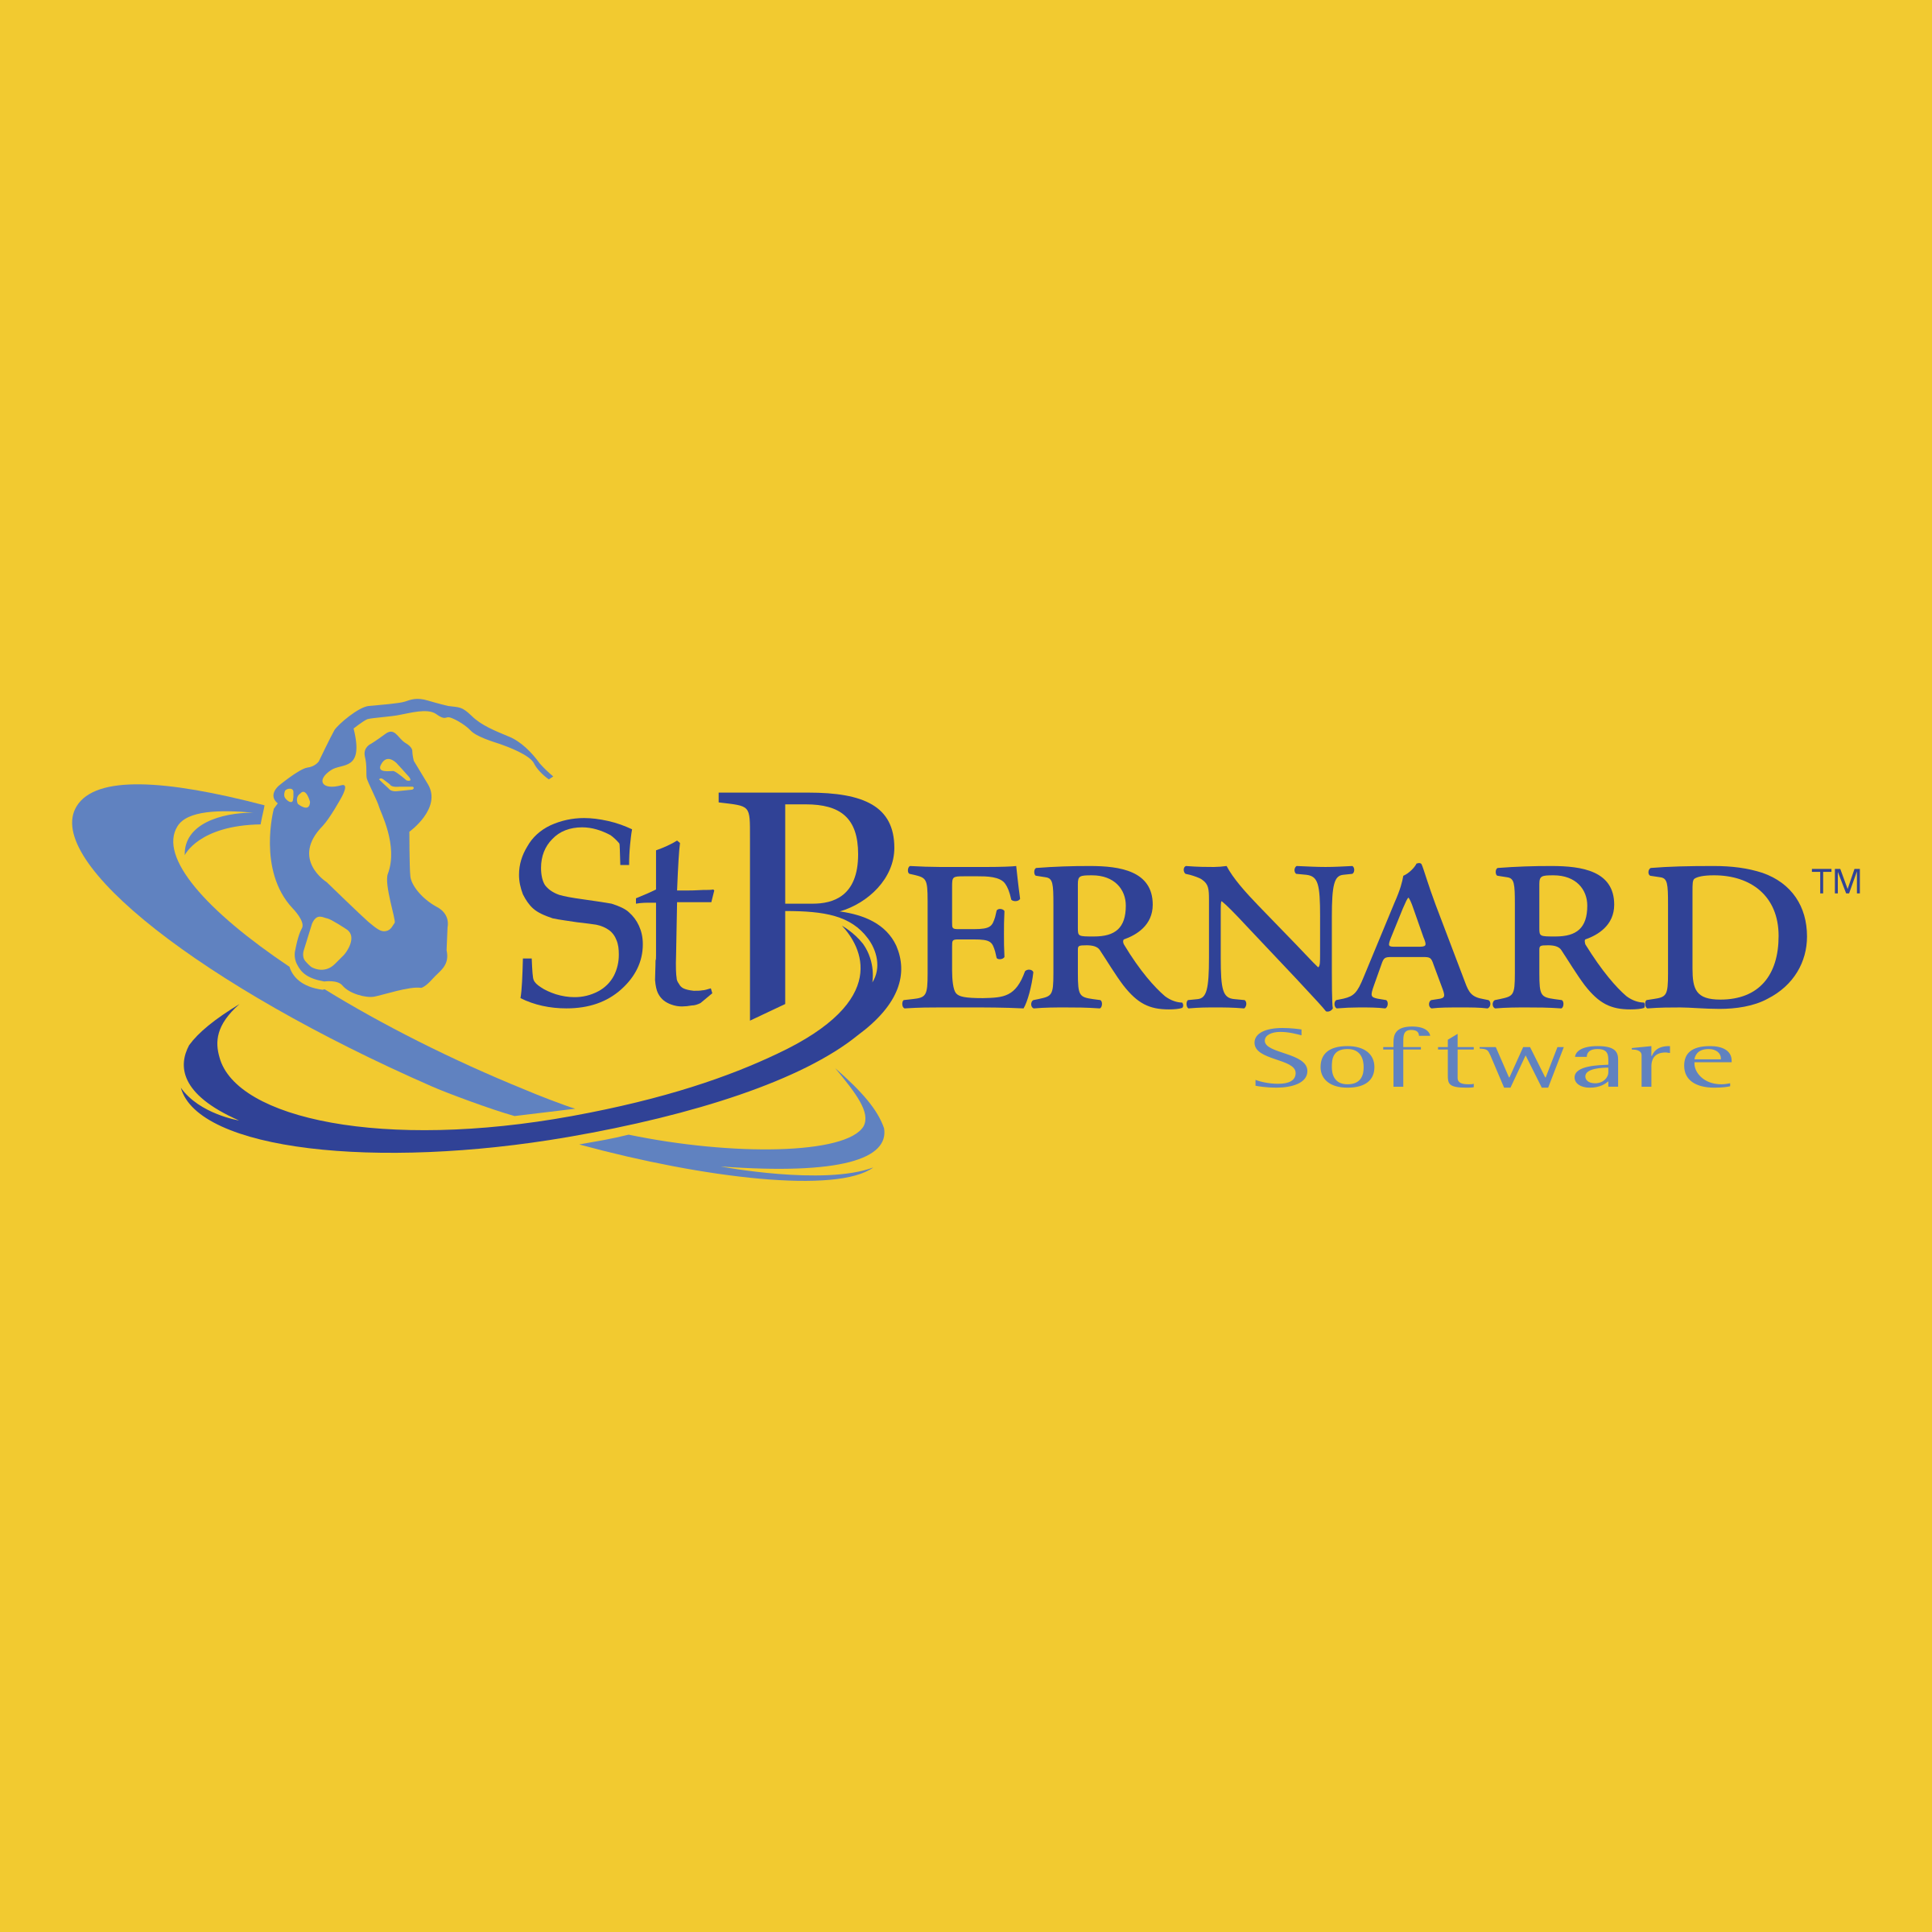 St. Bernard Software logo